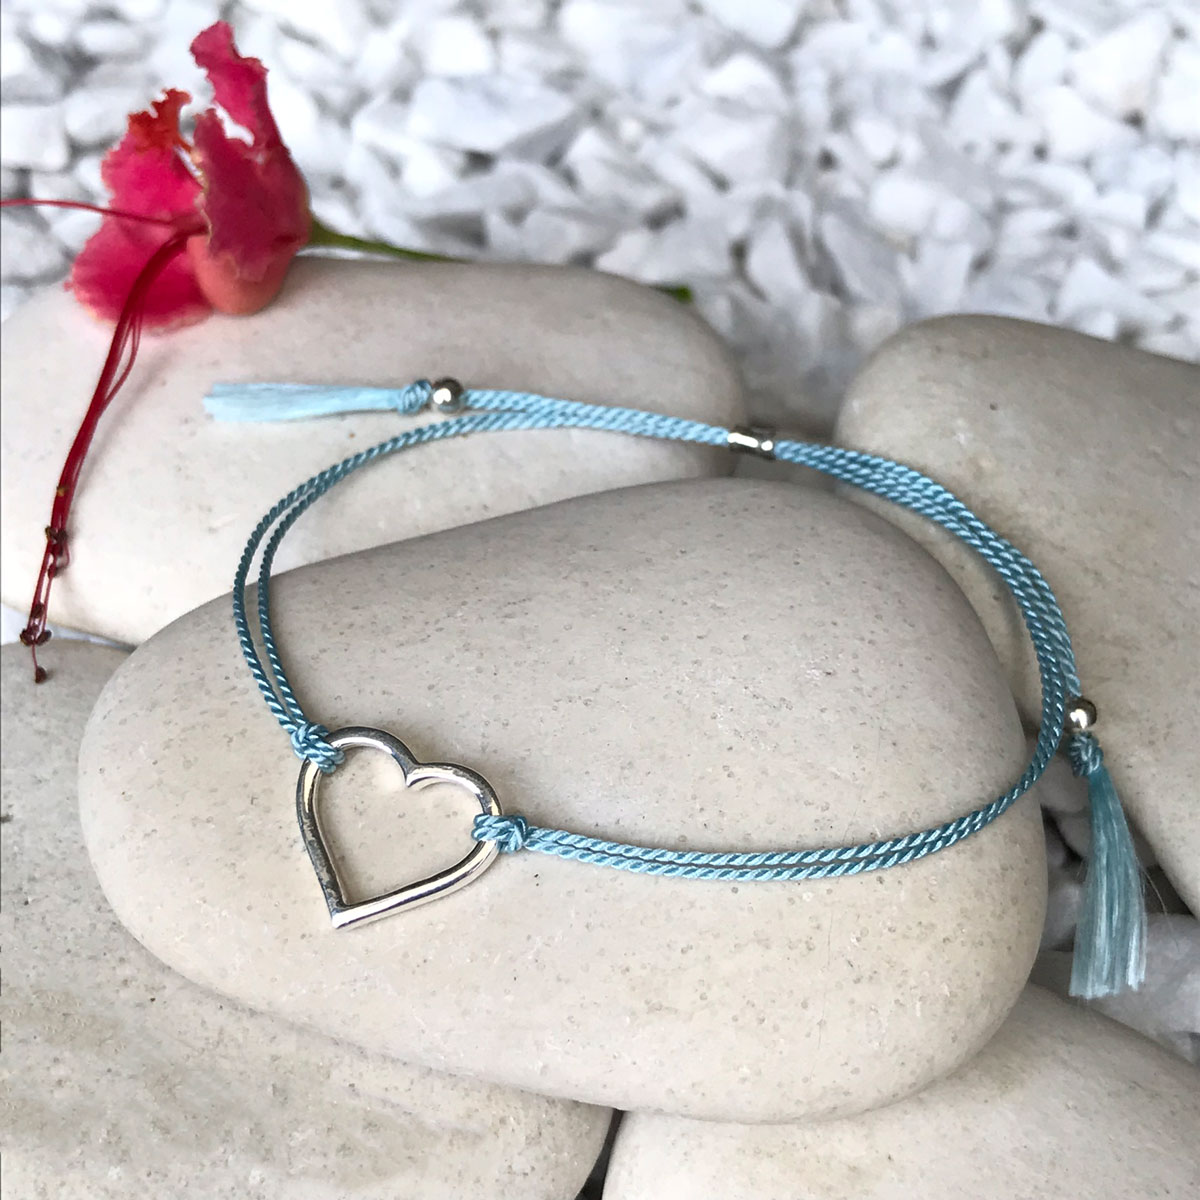 - Silver and Silk BraceletsElegant bracelets made with 100% silk and sterling silver/rose gold vermeil-style sourced from ThailandThe bracelet is slipped onto the wrist and uses a sliding hourglass bead for closure